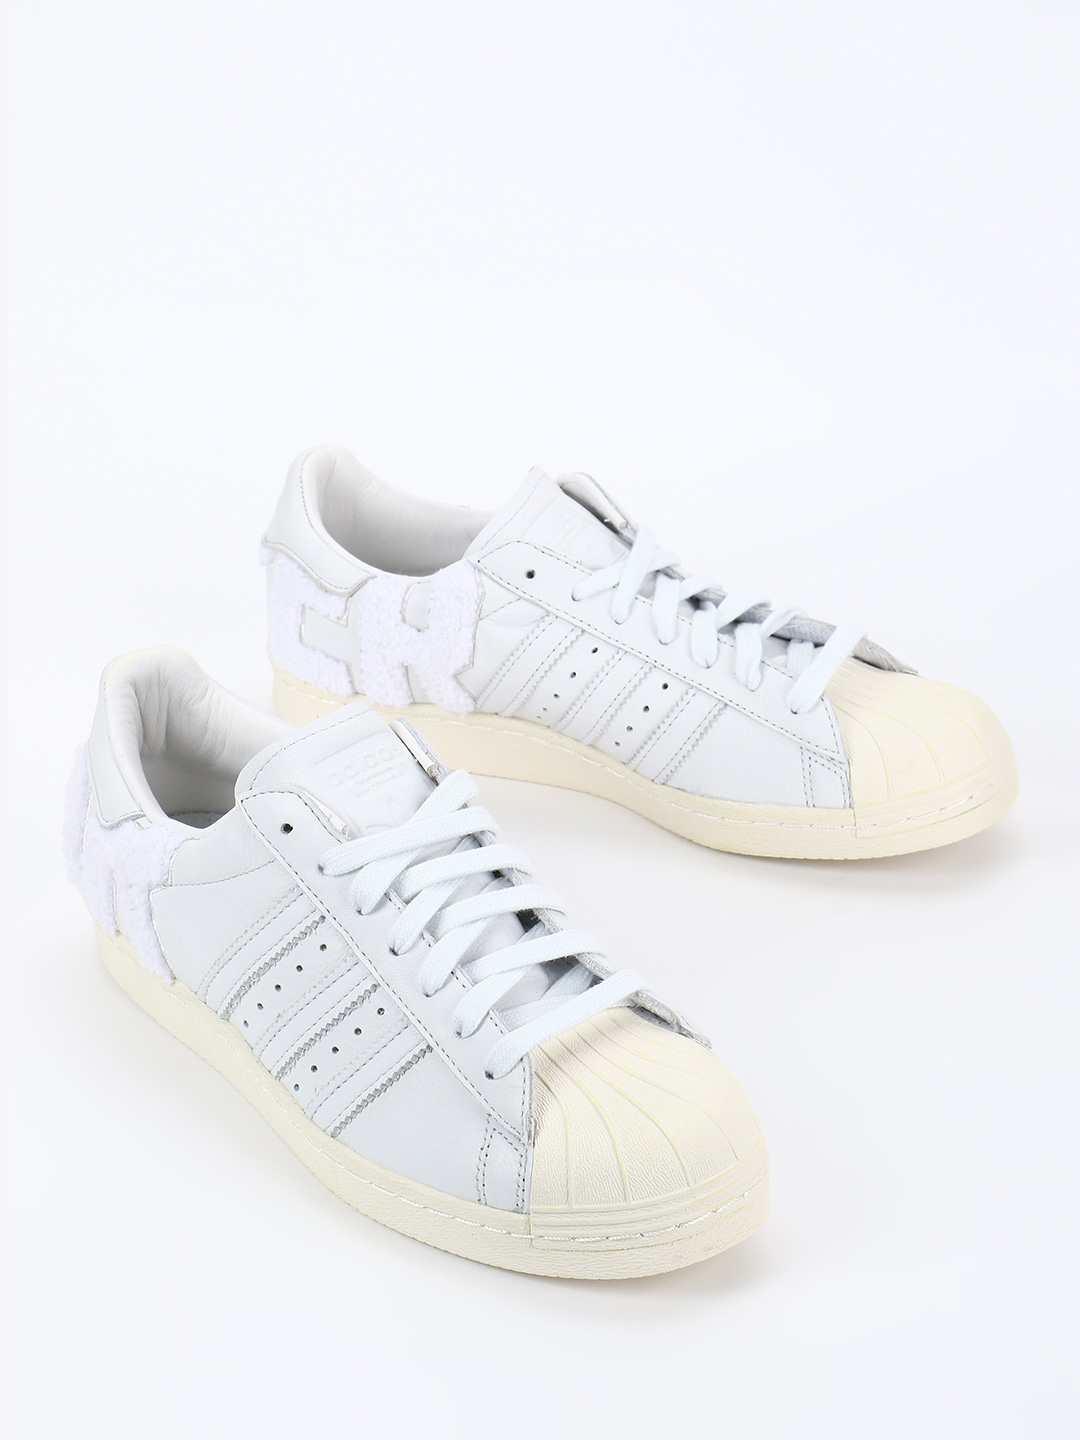 Adidas Originals Multi Superstar 80s Shoes 1